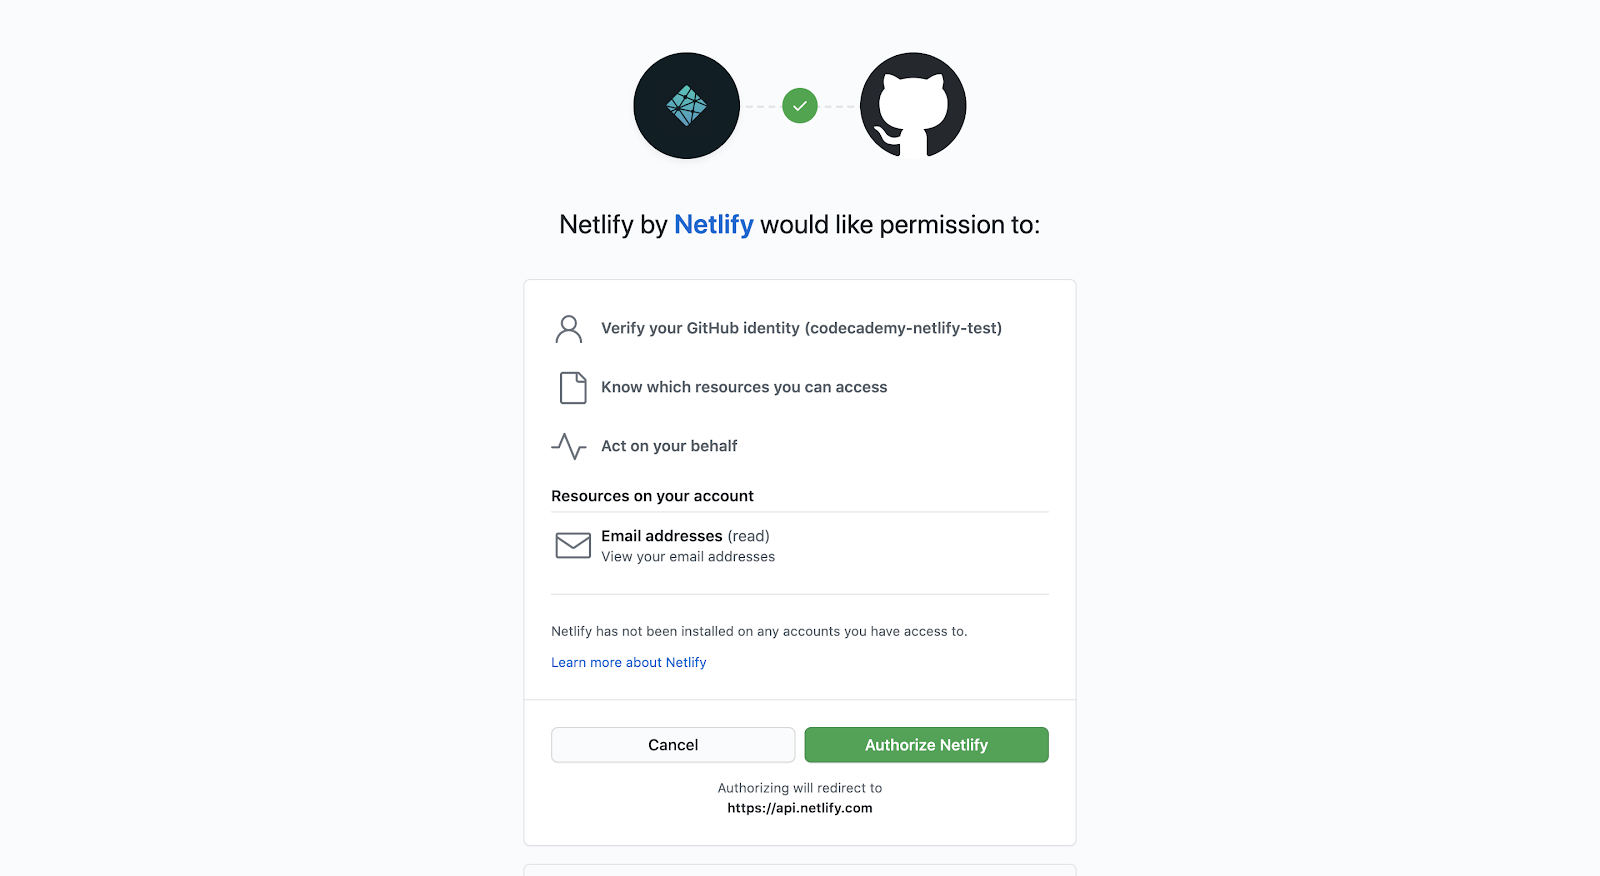 Screenshot of authorizing Netlify to connect with GitHub